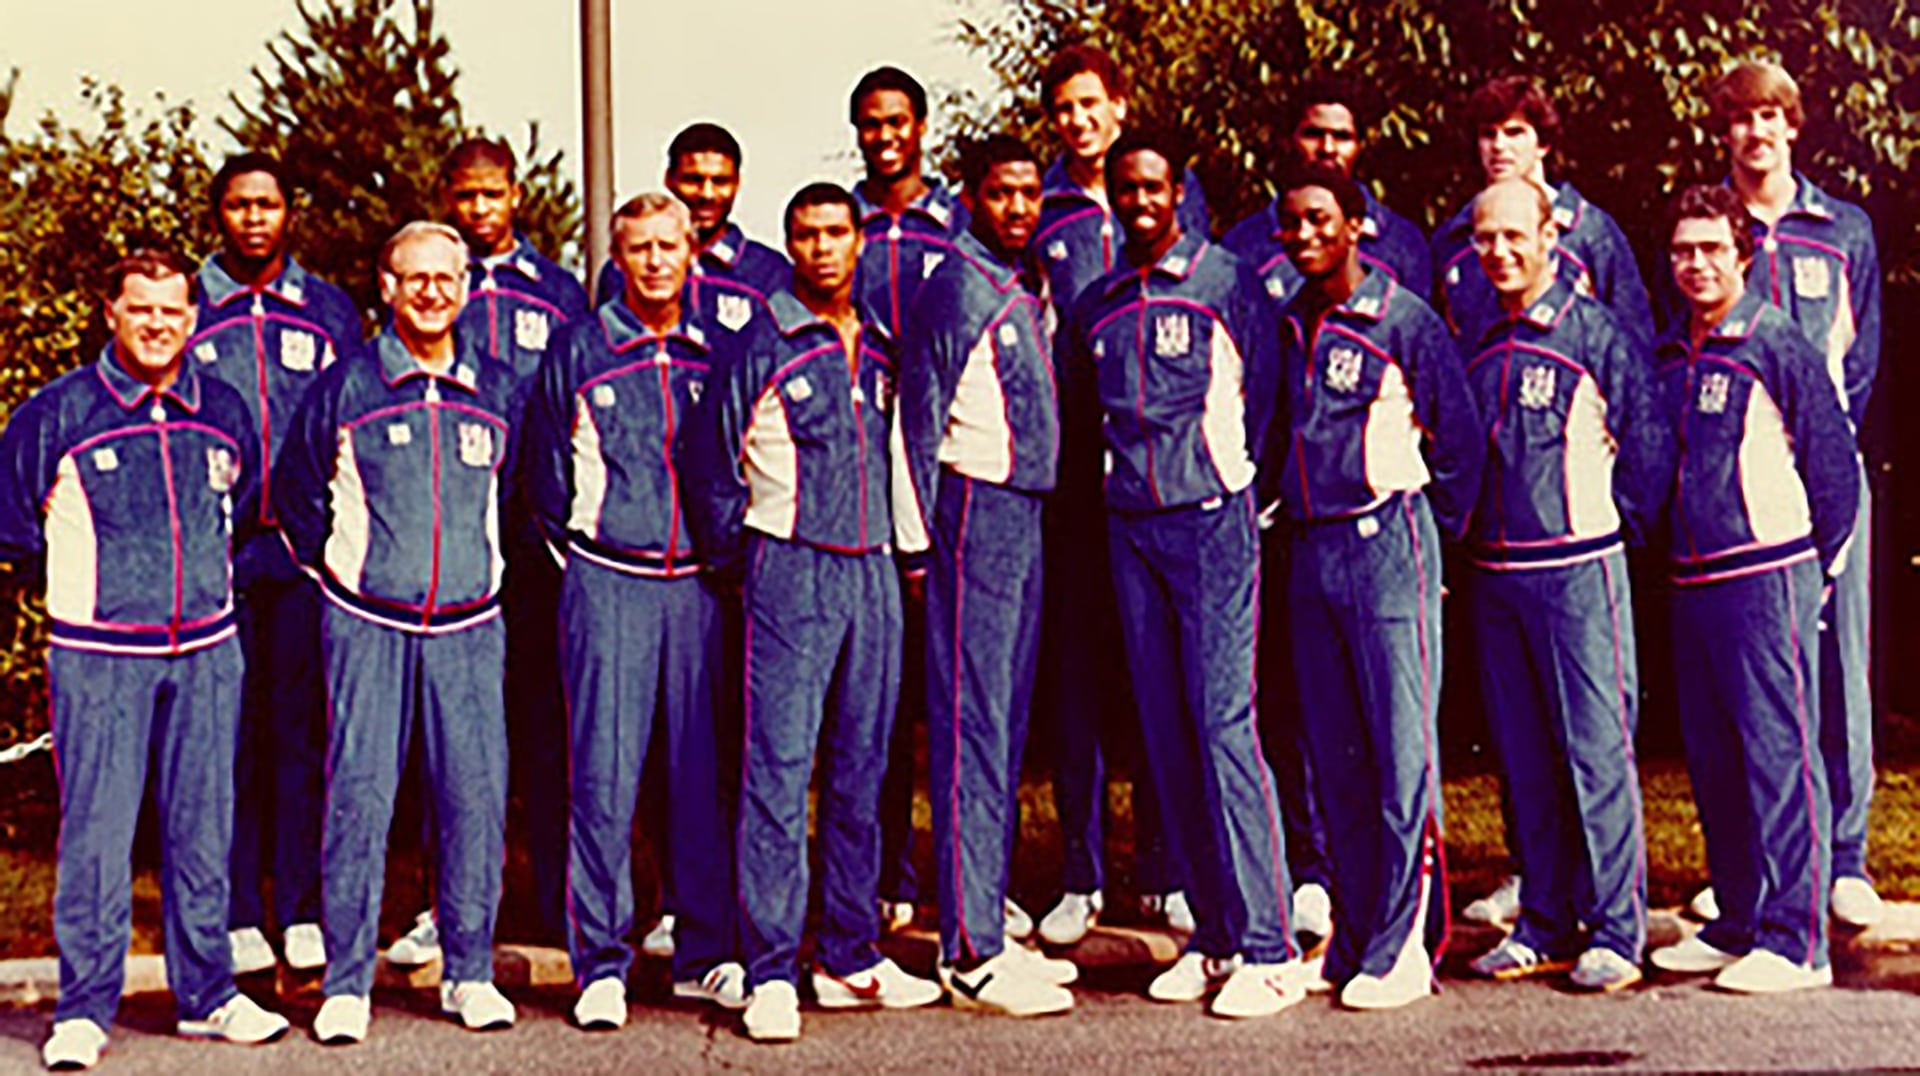 Isiah Thomas is part of the 1980 U.S. Olympic Men's Basketball Team photo